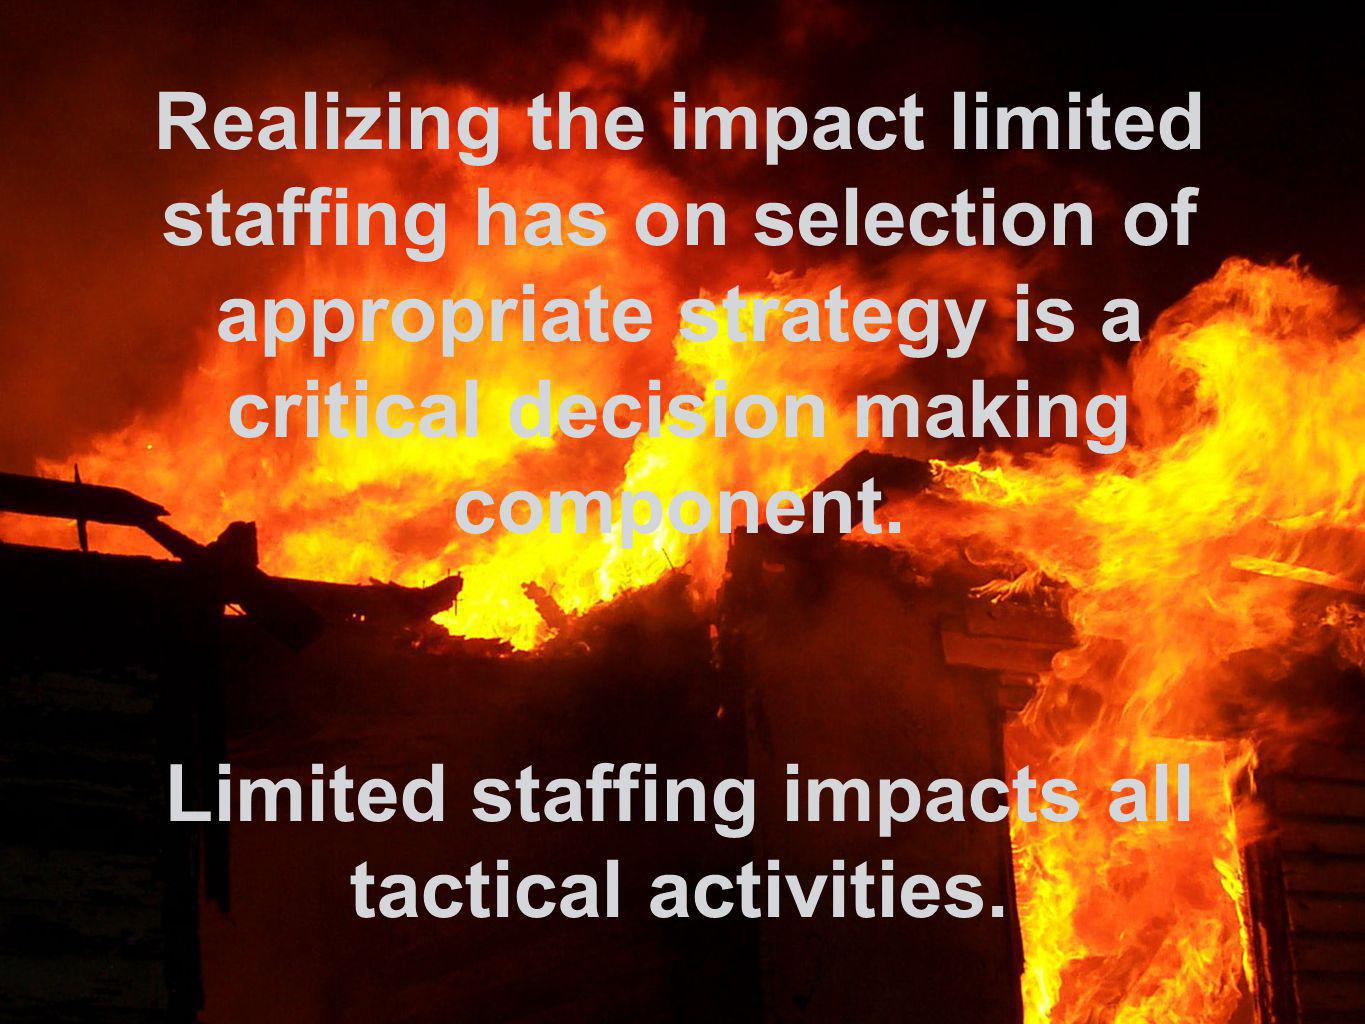 Limited staffing impacts all tactical activities.